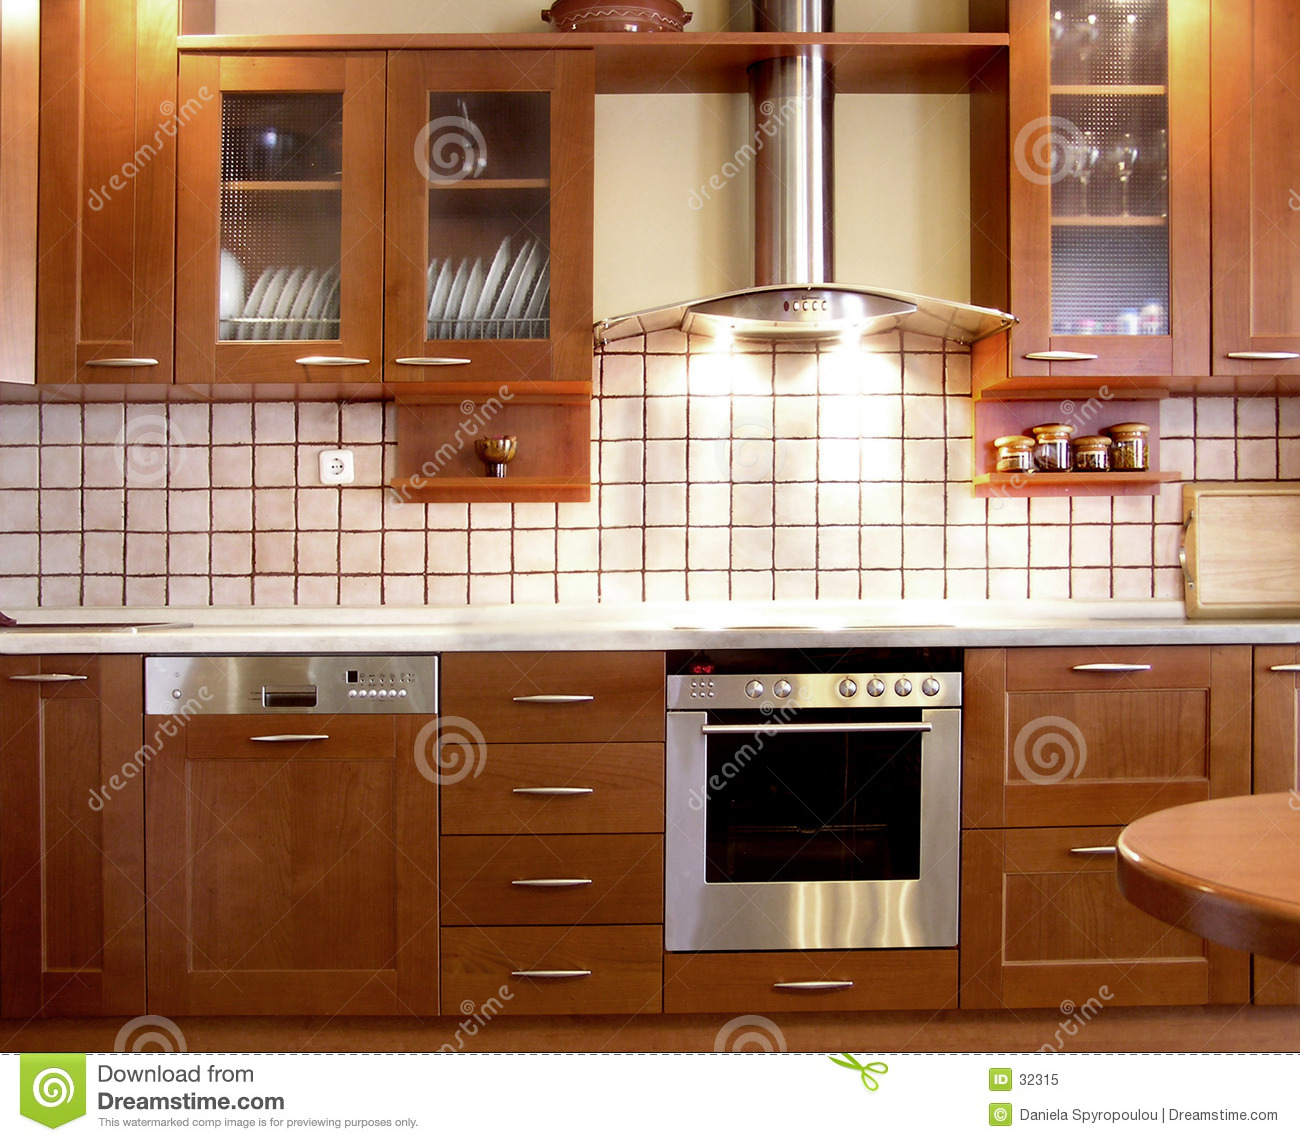 sample kitchen designs conception de cuisine de cerise image stock image du 2099